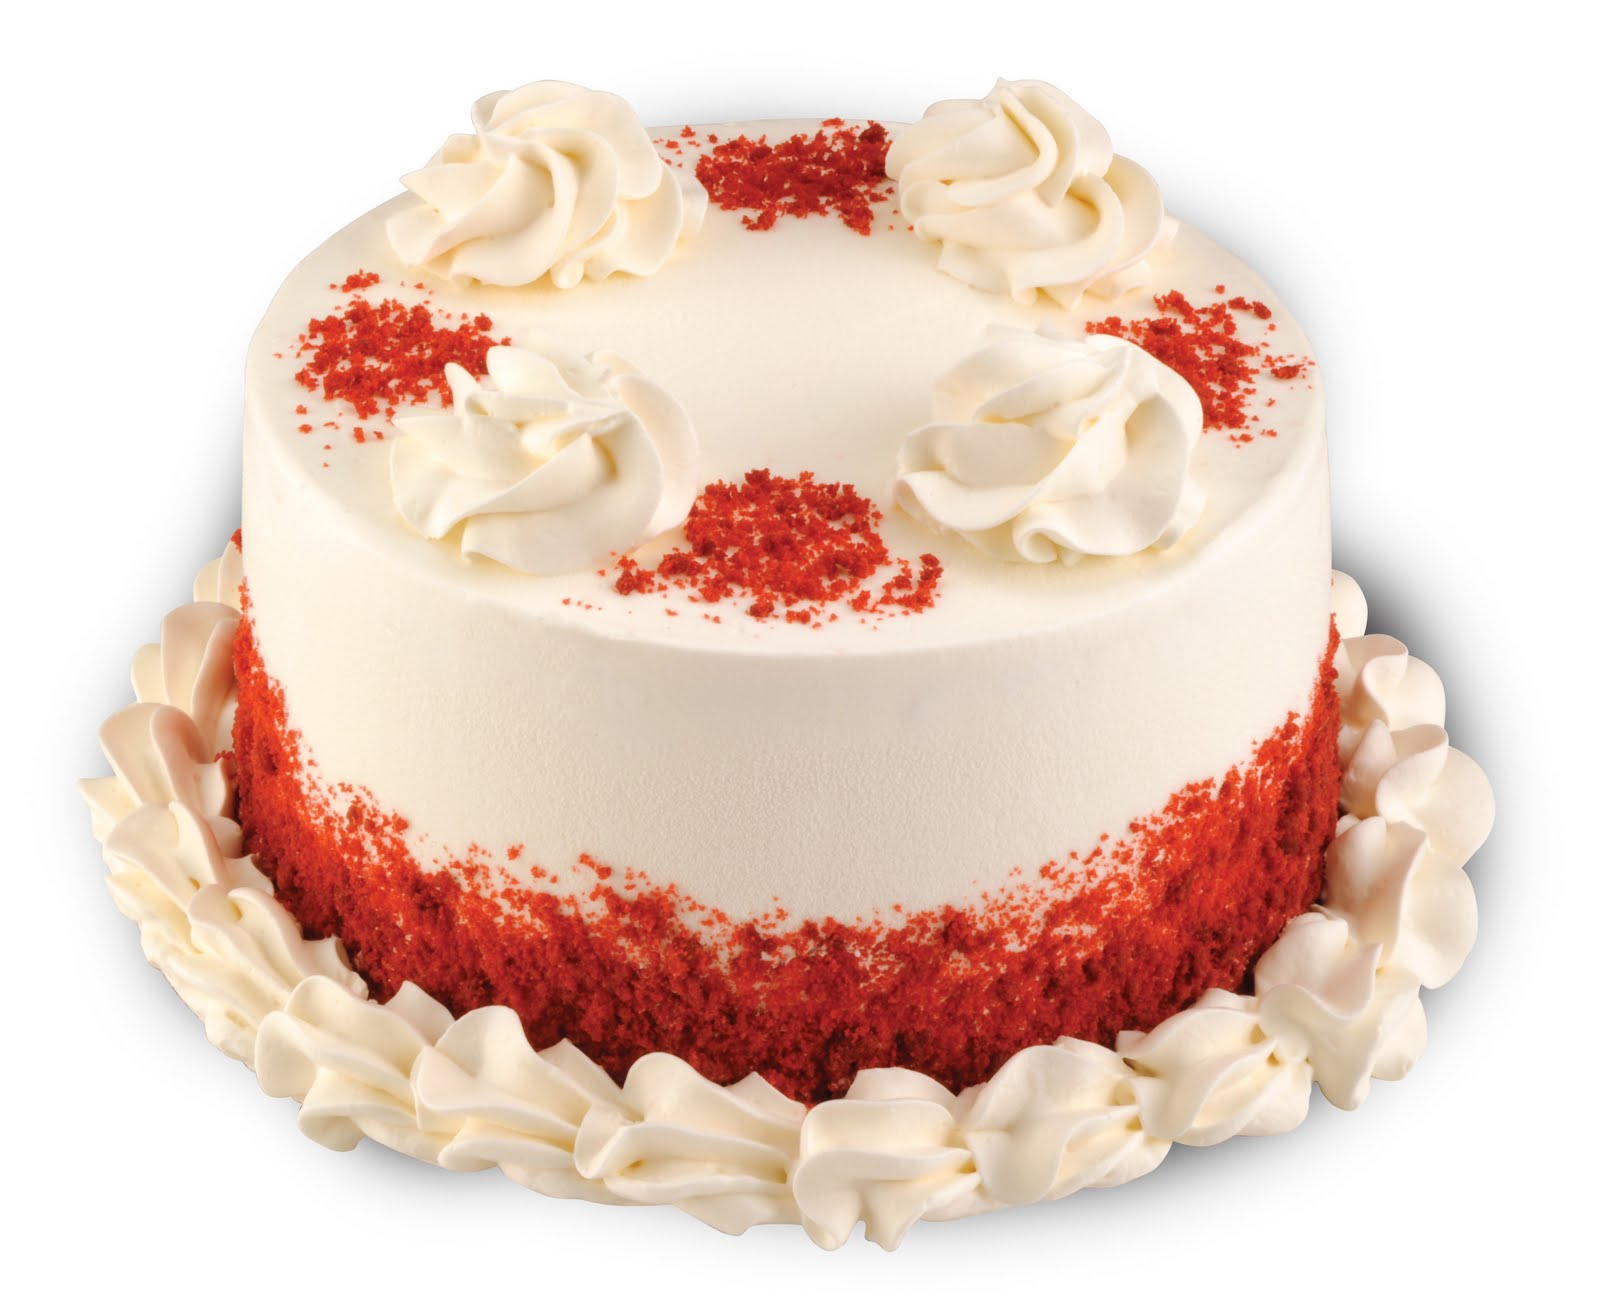 Fancy Red Velvet Cake Recipe